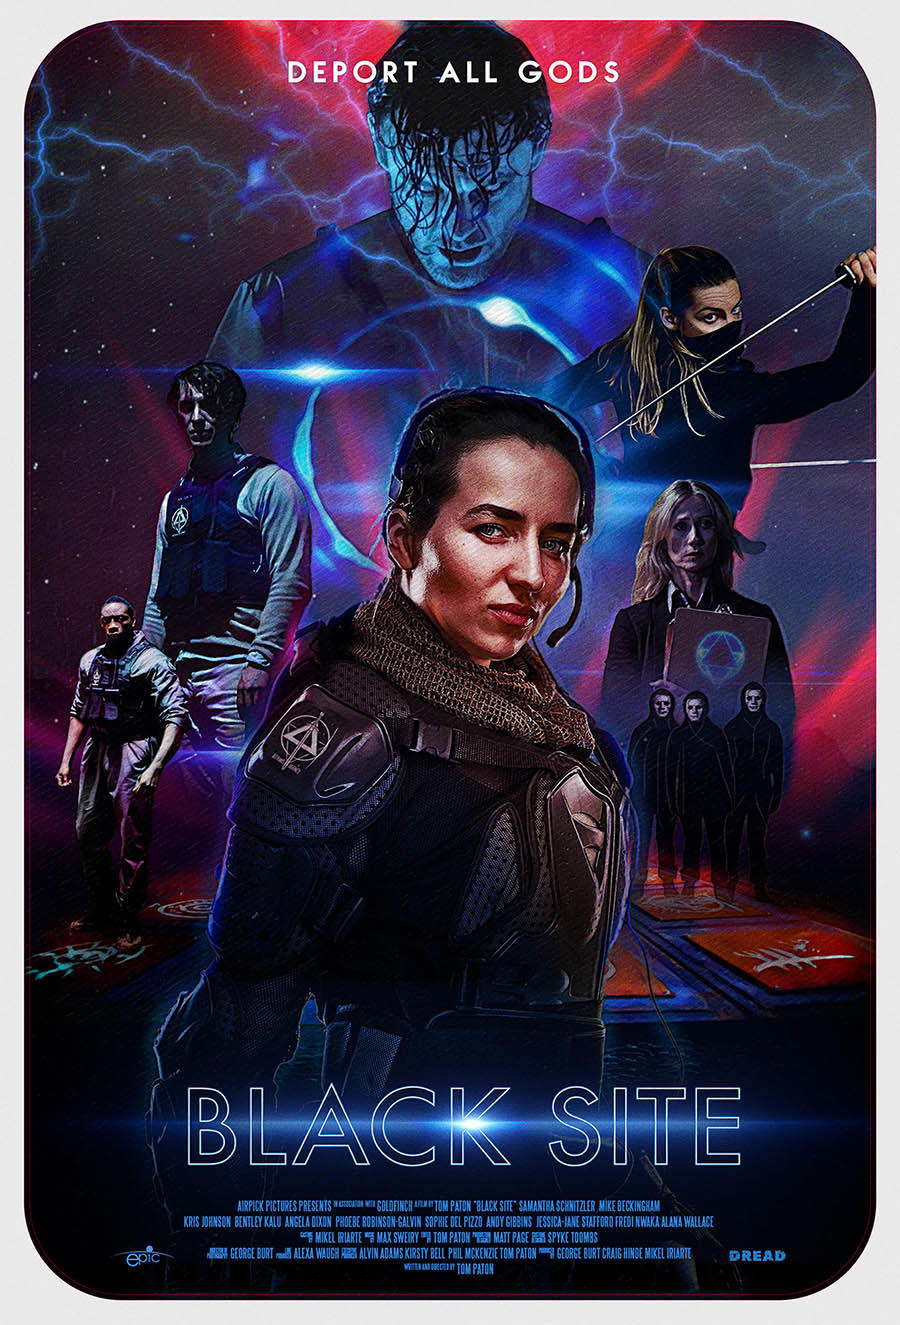 Black Site poster art